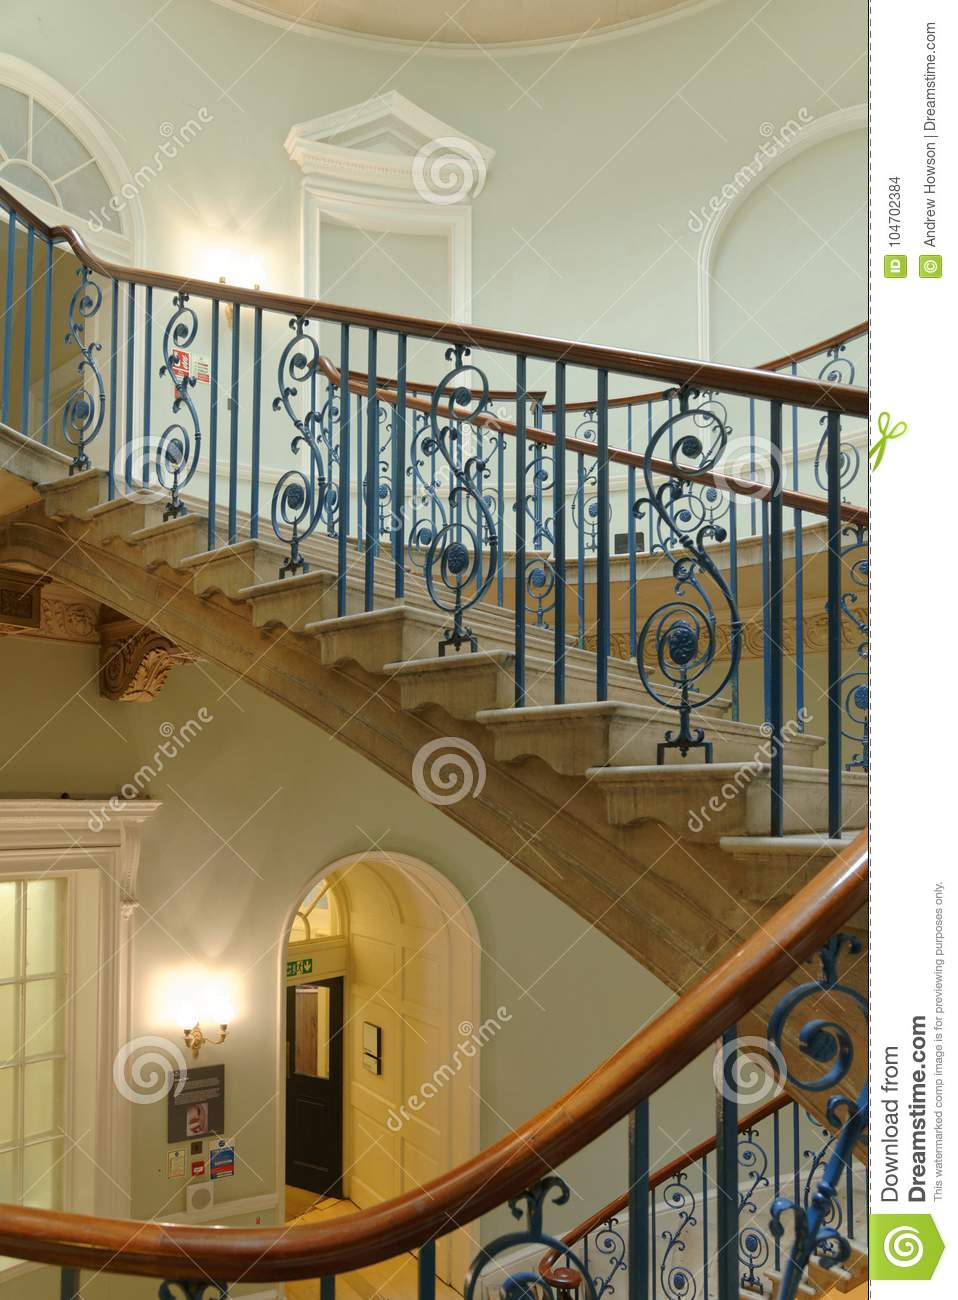 Image Taken Of A Naturally Lit And Elegant Victorian Period Stair With  Stone Steps In London, England.